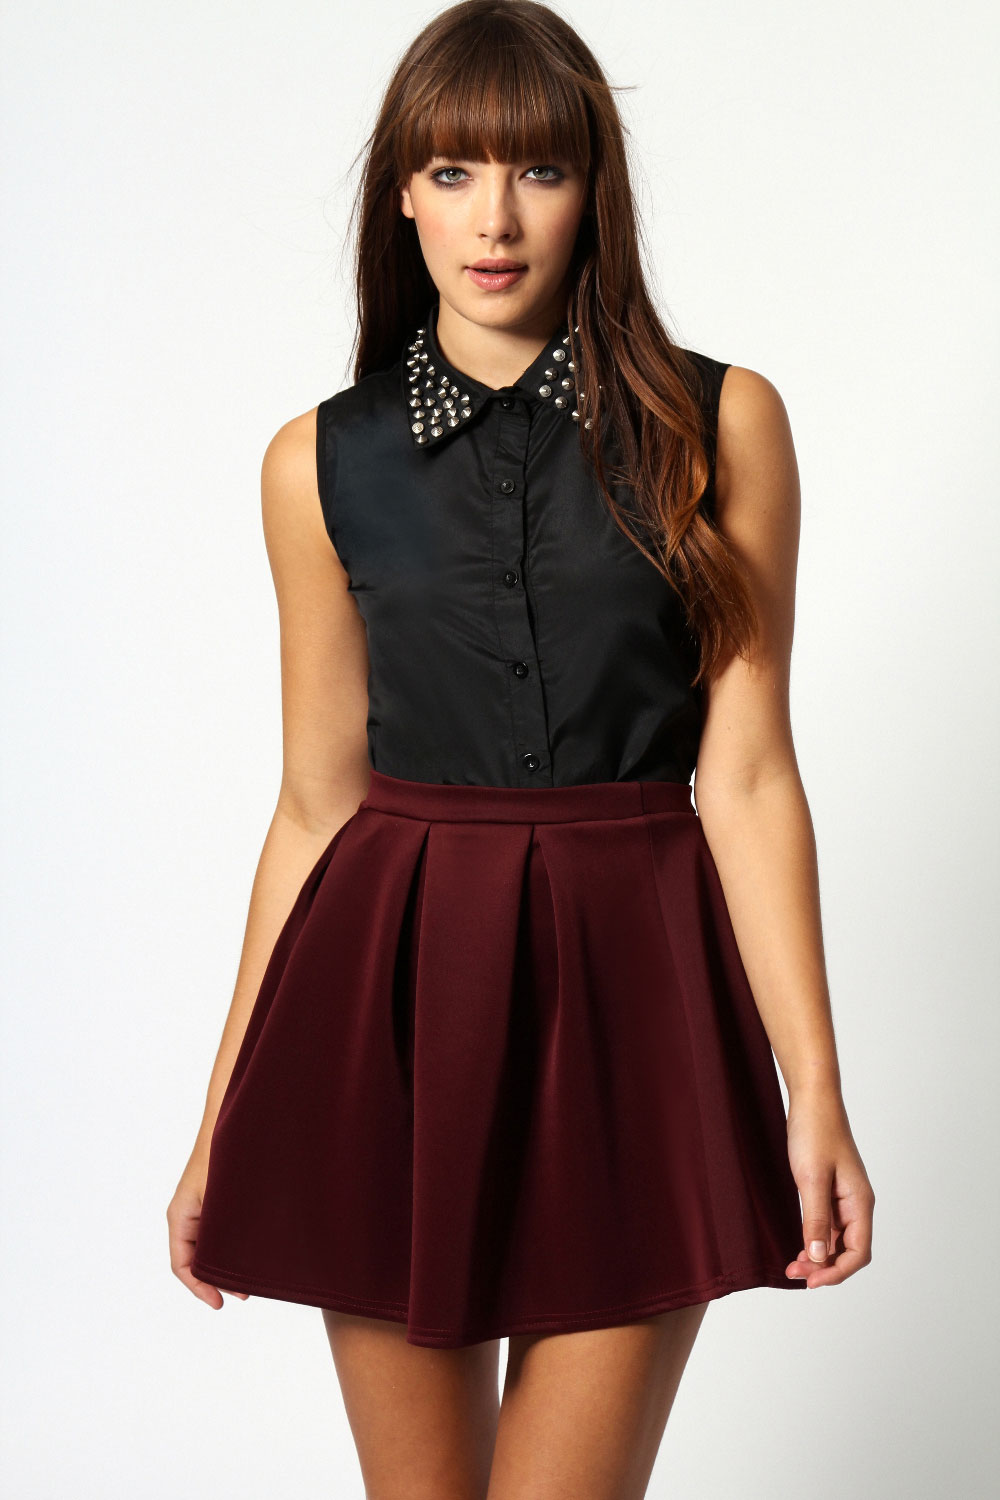 Boohoo-Kate-Box-Pleat-Skater-Hip-Length-Skirt thumbnail 2